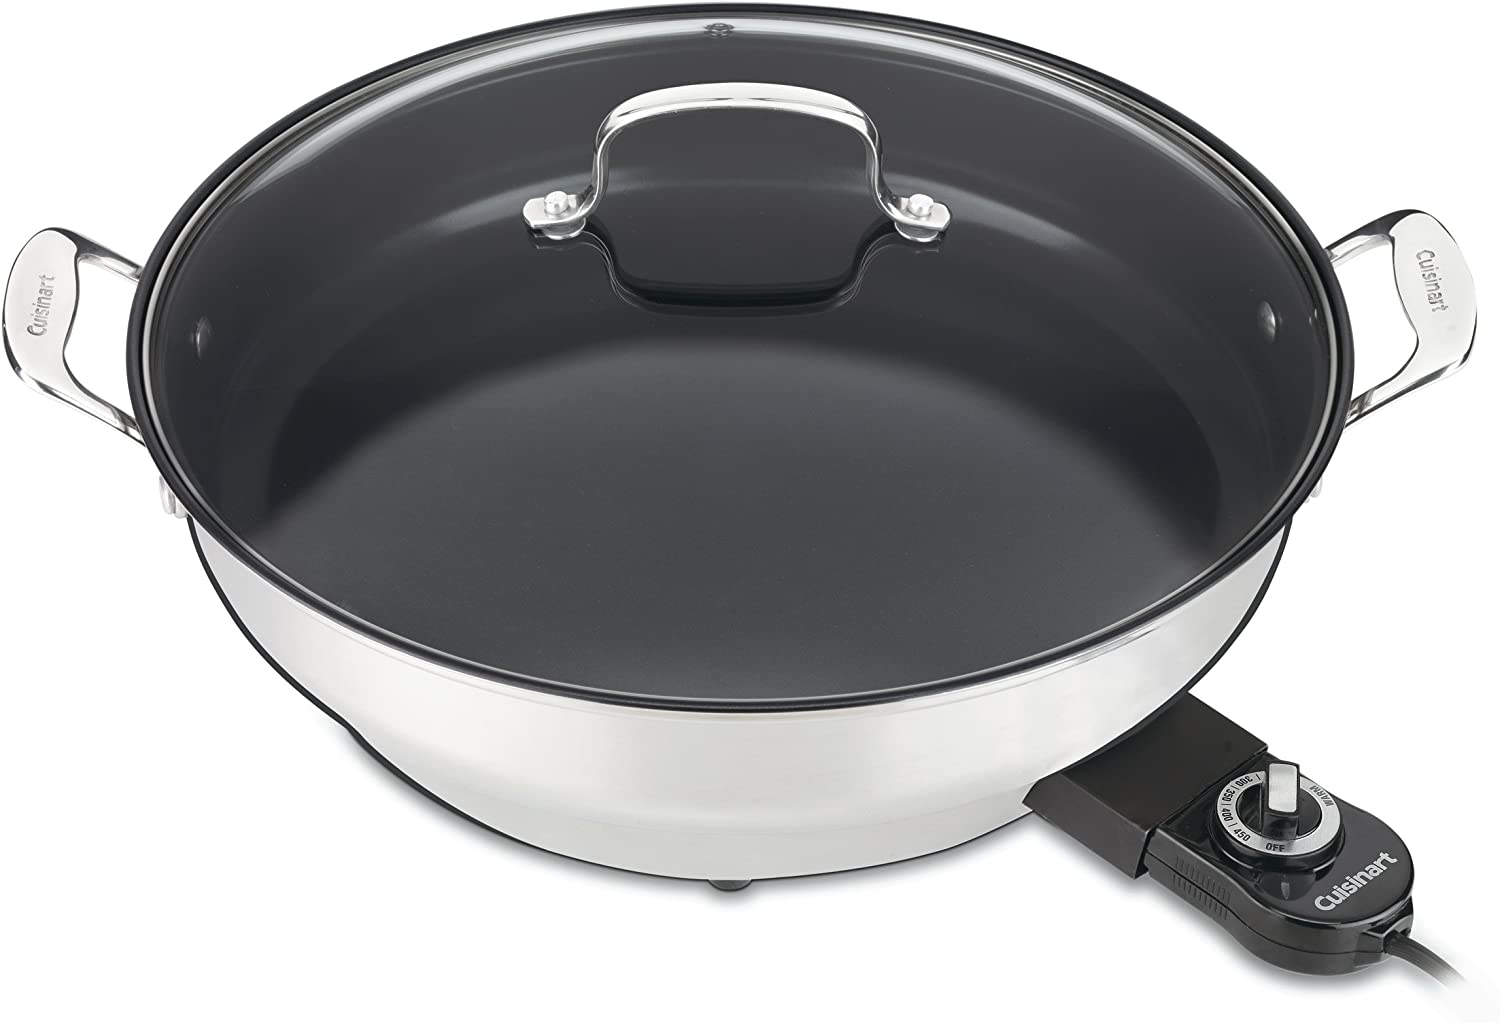 Cuisinart CSK-250WS Indefinitely GreenGourmet 14-Inch Nonstick Skill 5 popular Electric